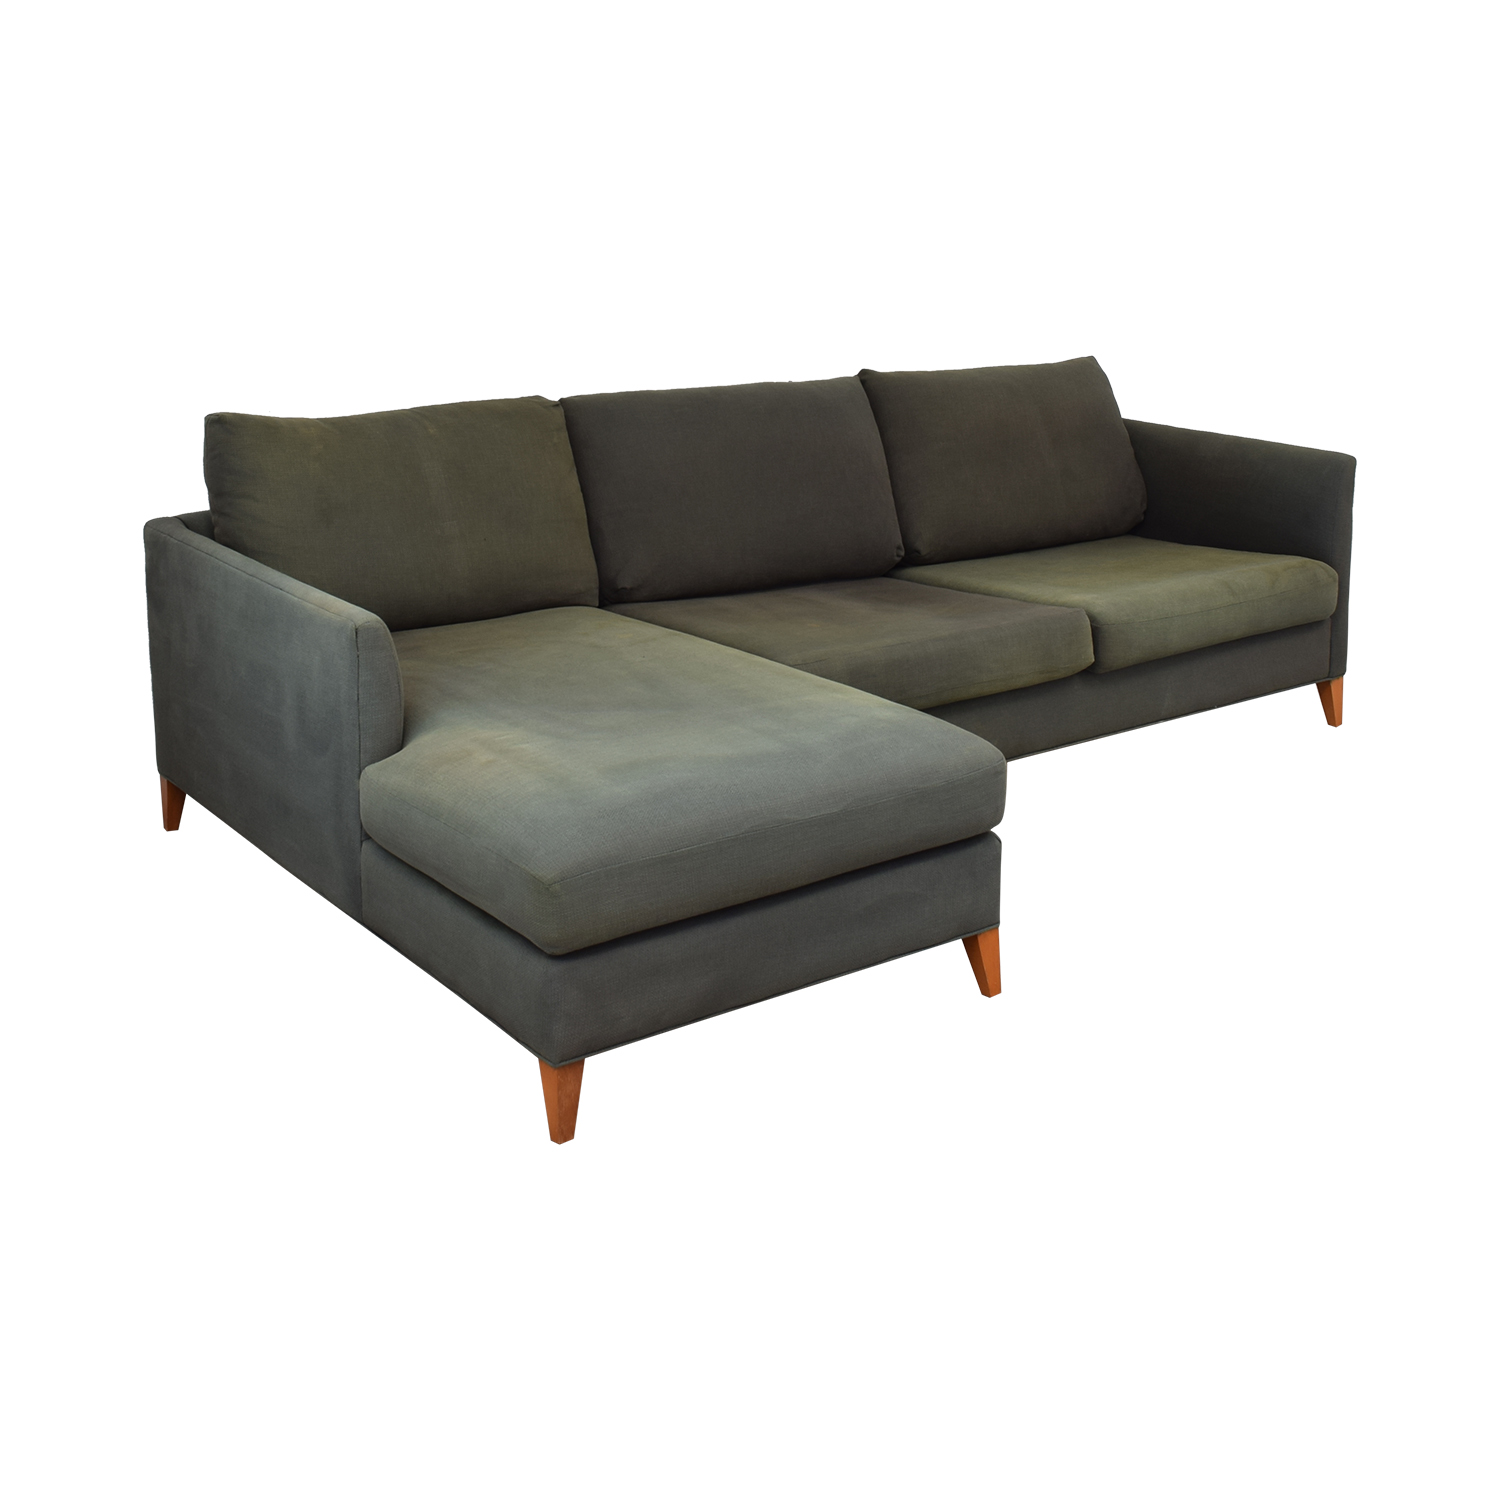 Crate & Barrel Two Piece Sectional with Chaise Crate & Barrel